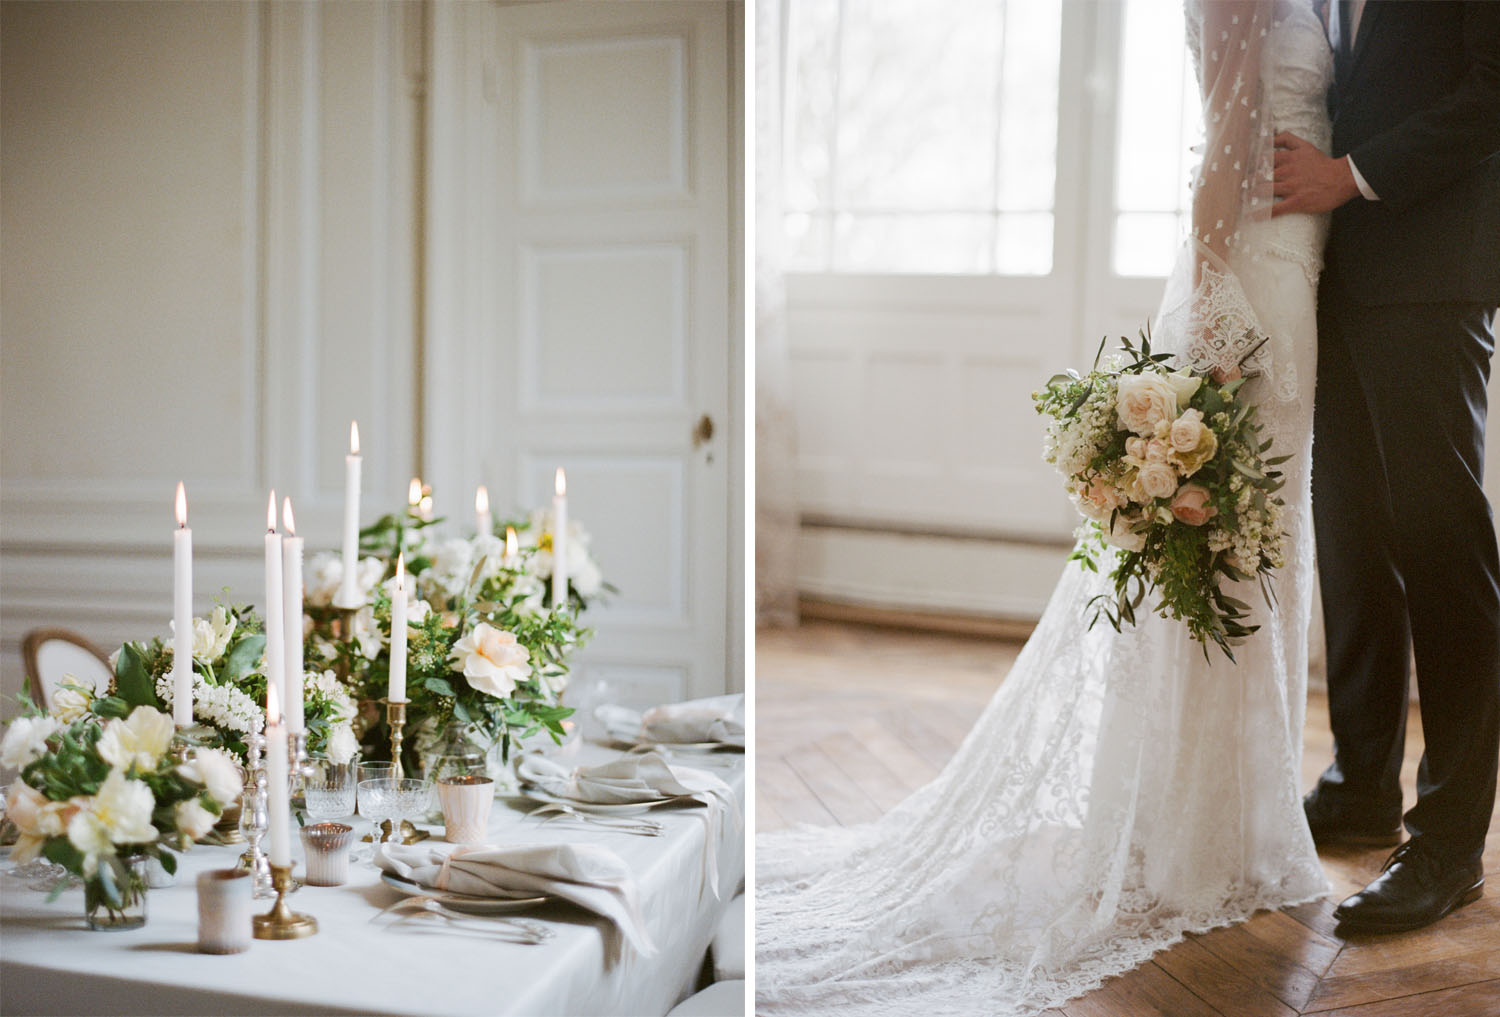 A cream and blush wedding reception table at Chateau de Varennes in Burgundy, France; Sylvie Gil Photography